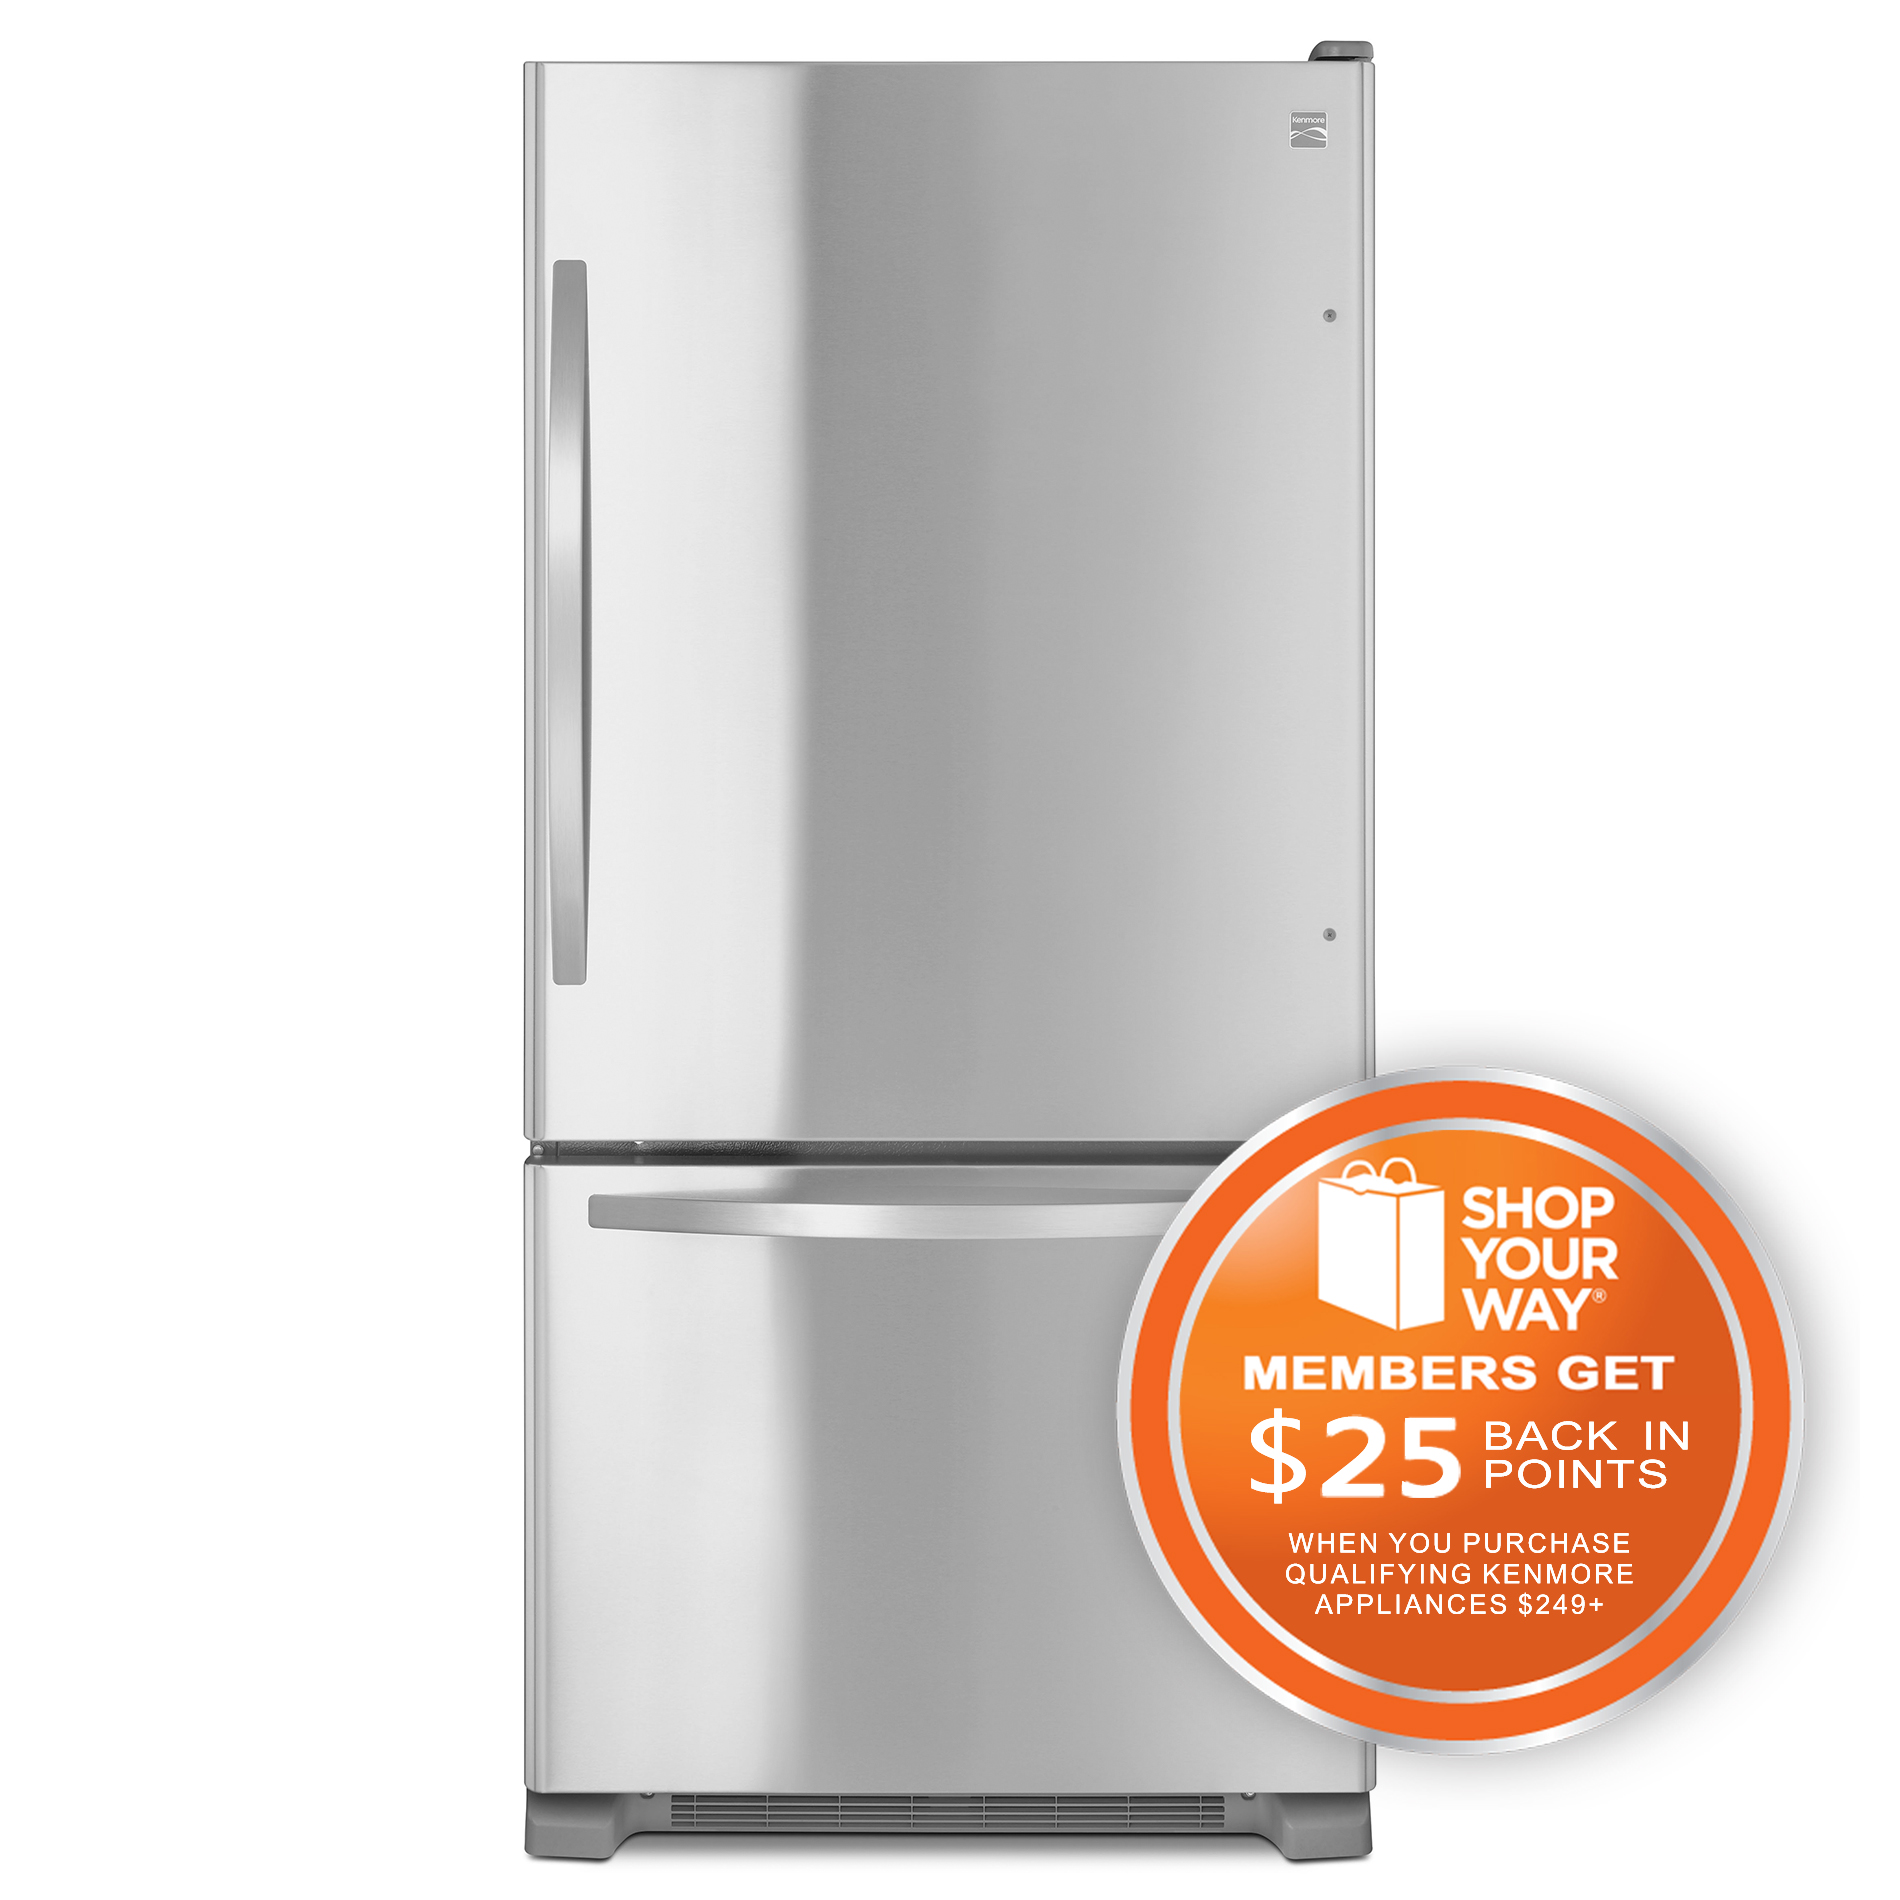 79343-22-cu-ft-Bottom-Freezer-Single-Door-Refrigerator-Stainless-Steel